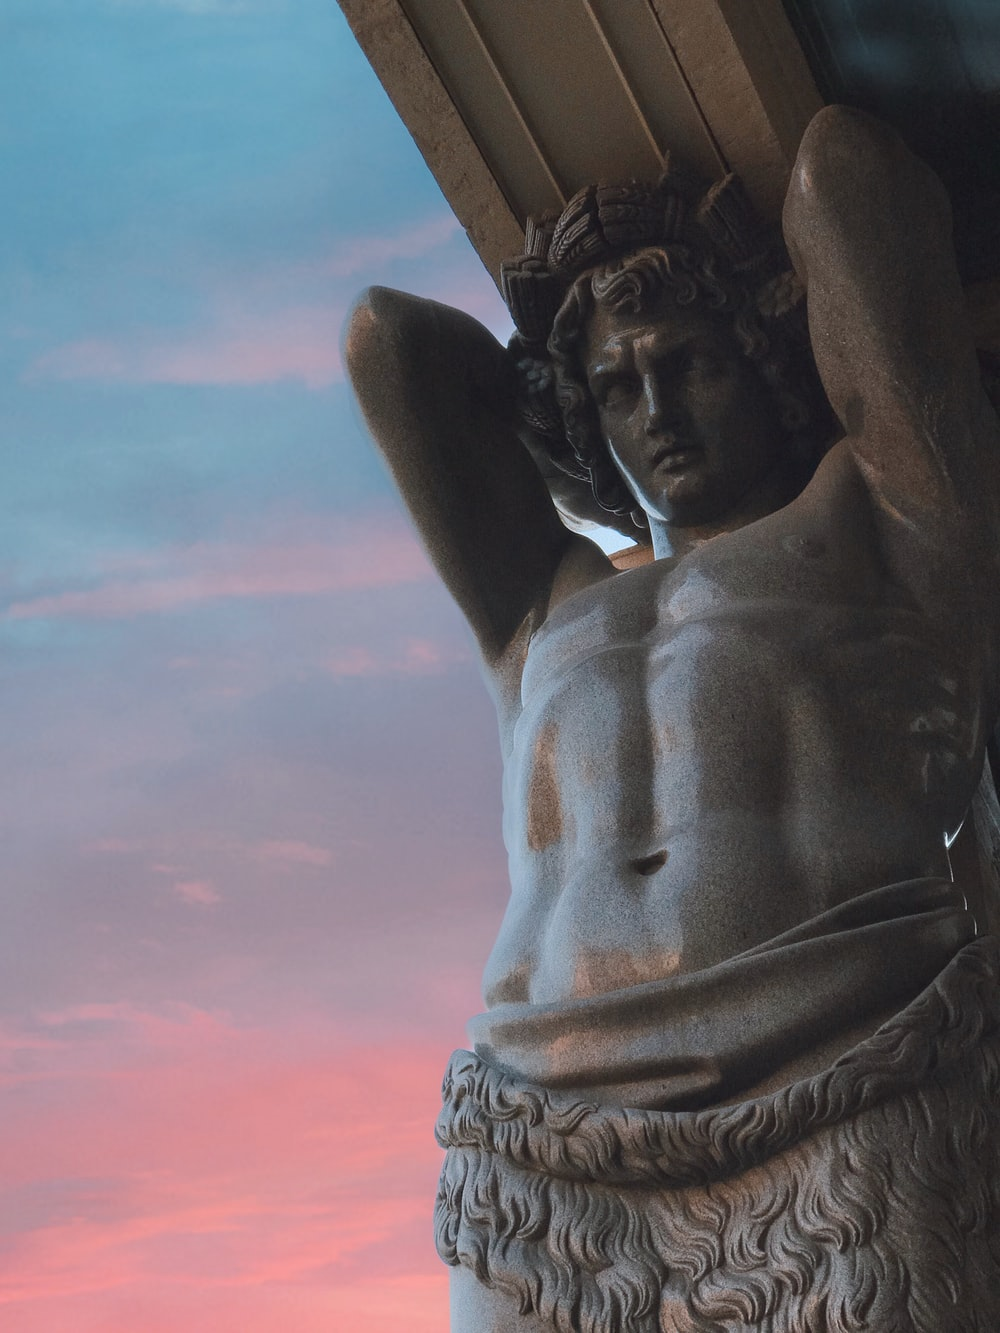 standing person statue during golden hour